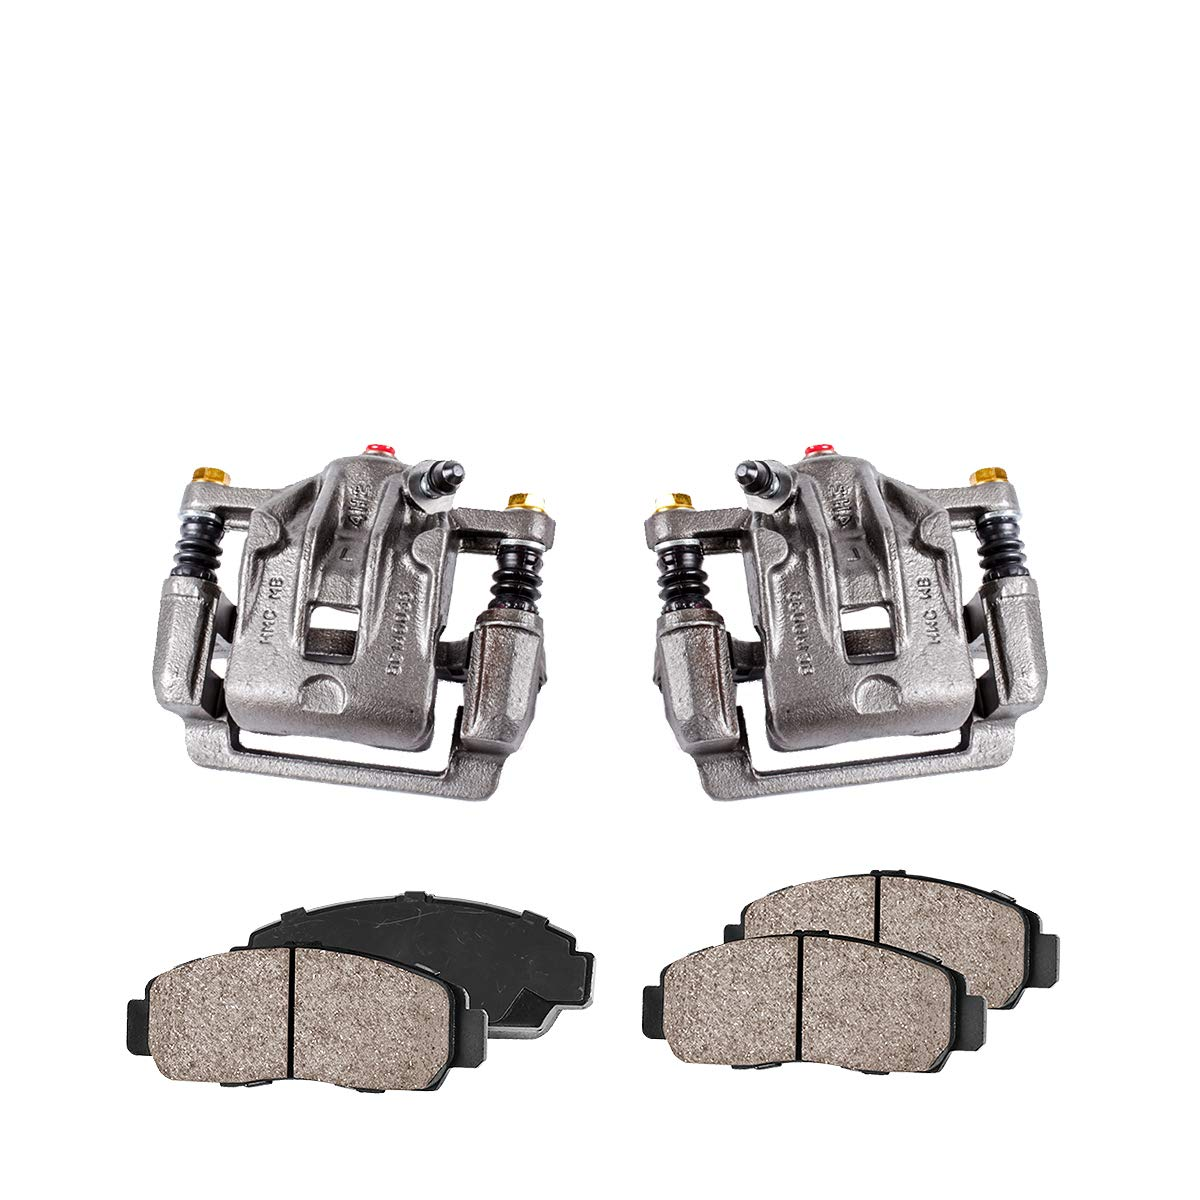 Callahan CCK04138 [2] REAR Premium Loaded Original Caliper Pair + Ceramic Brake Pads + Hardware Kit Callahan Brake Parts